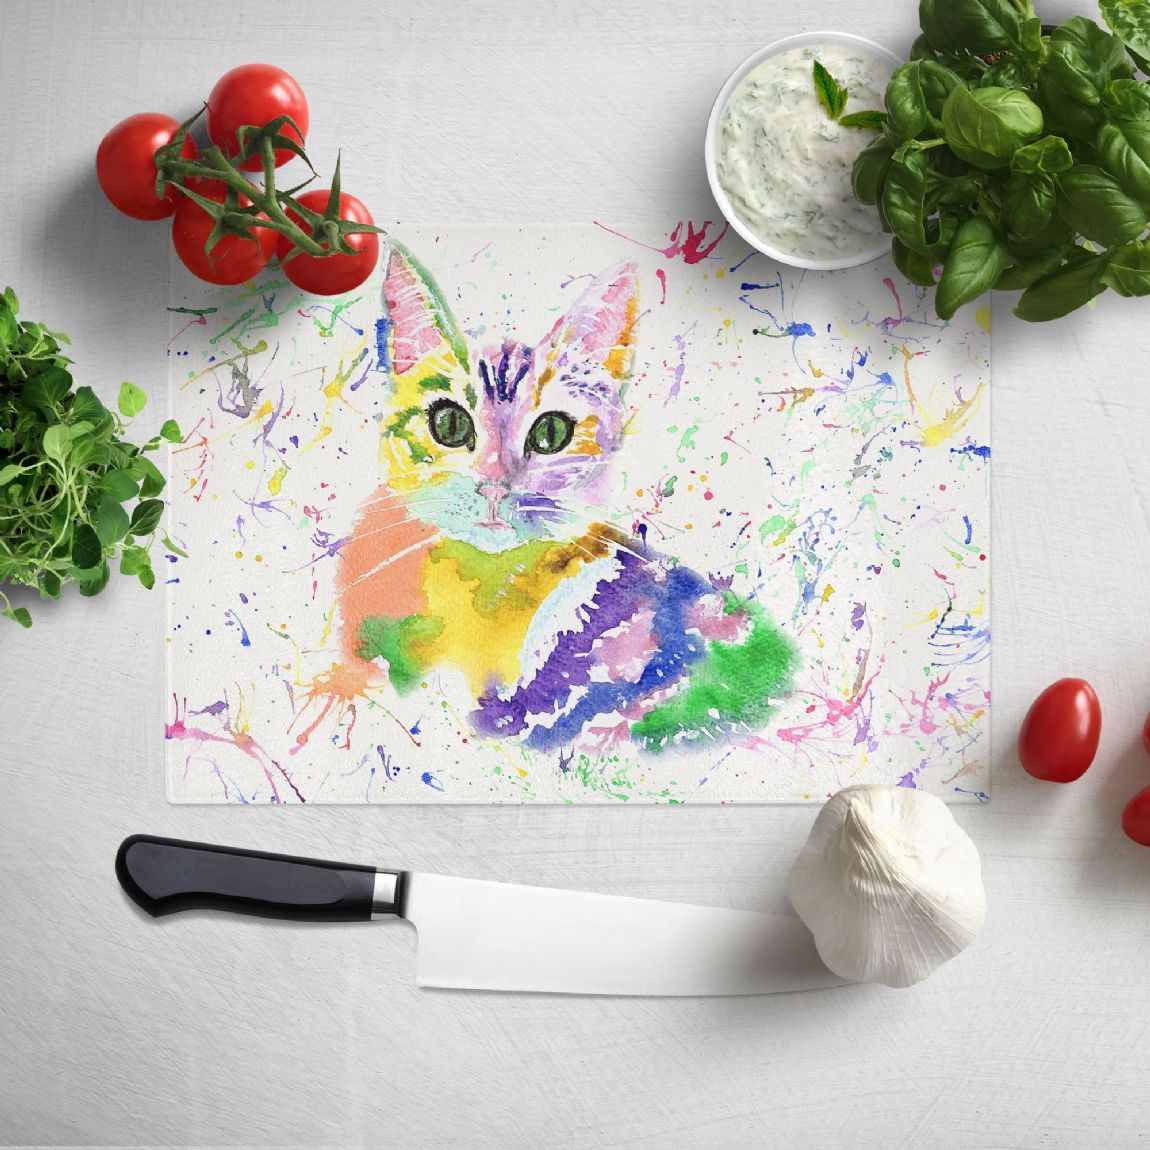 Glass worktop saver/chopping board (Kitten)